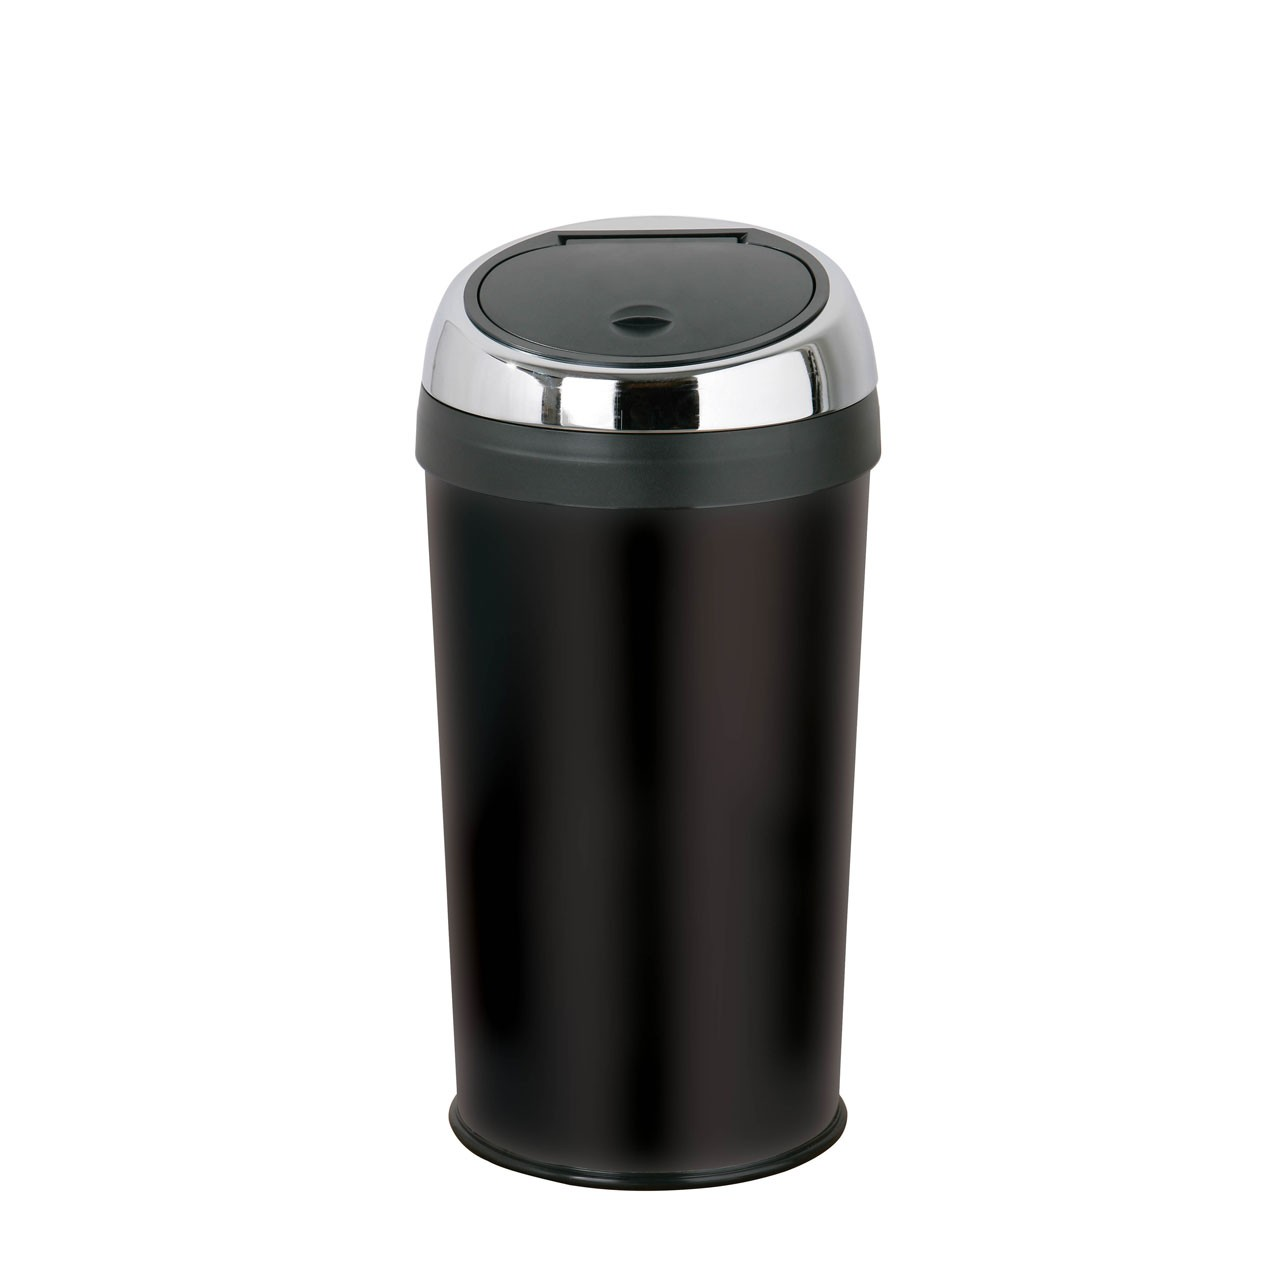 Set Of 2 30Ltr Touch Top Bin Black Enamel Made OfStainless Steel